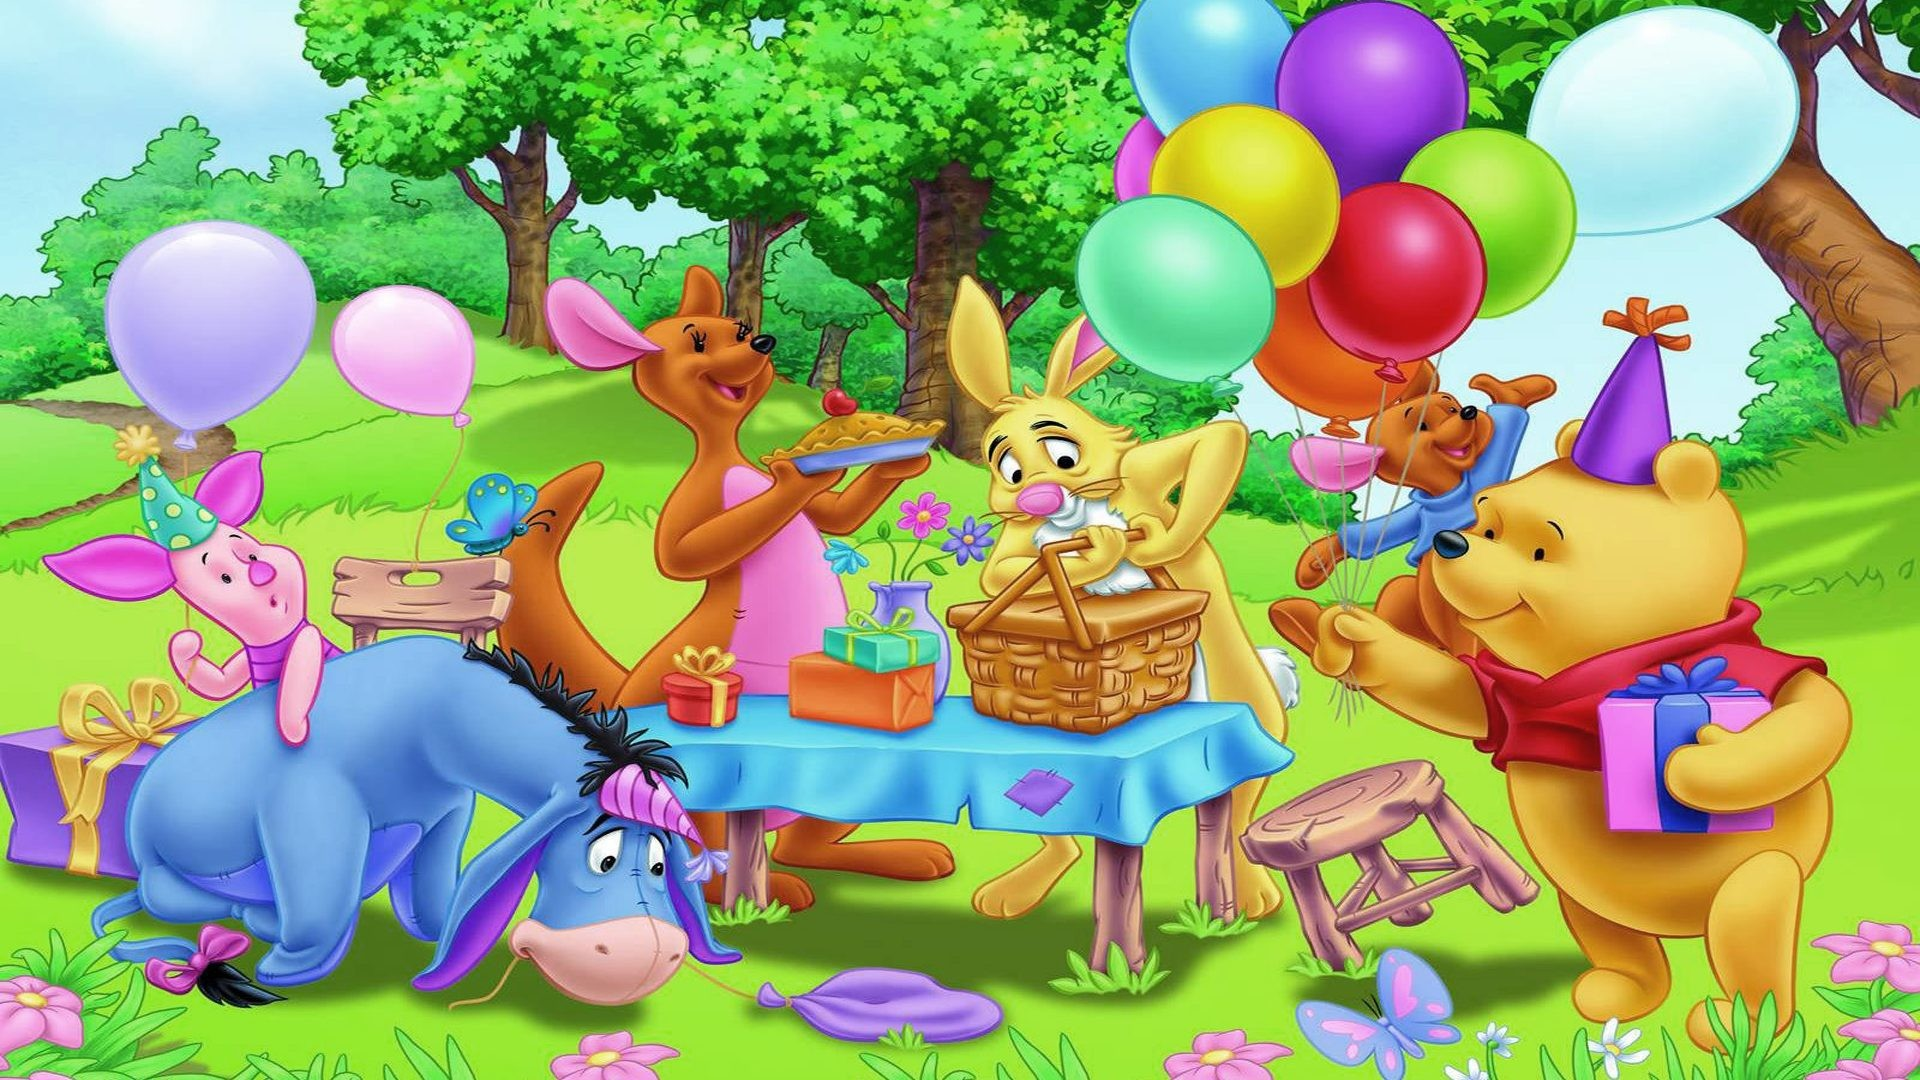 Res: 1920x1080, winnie the pooh birthday wallpaper birthday party winnie the pooh and  friends gifts balloons hd wallpaper 1920×1200 1920×1080